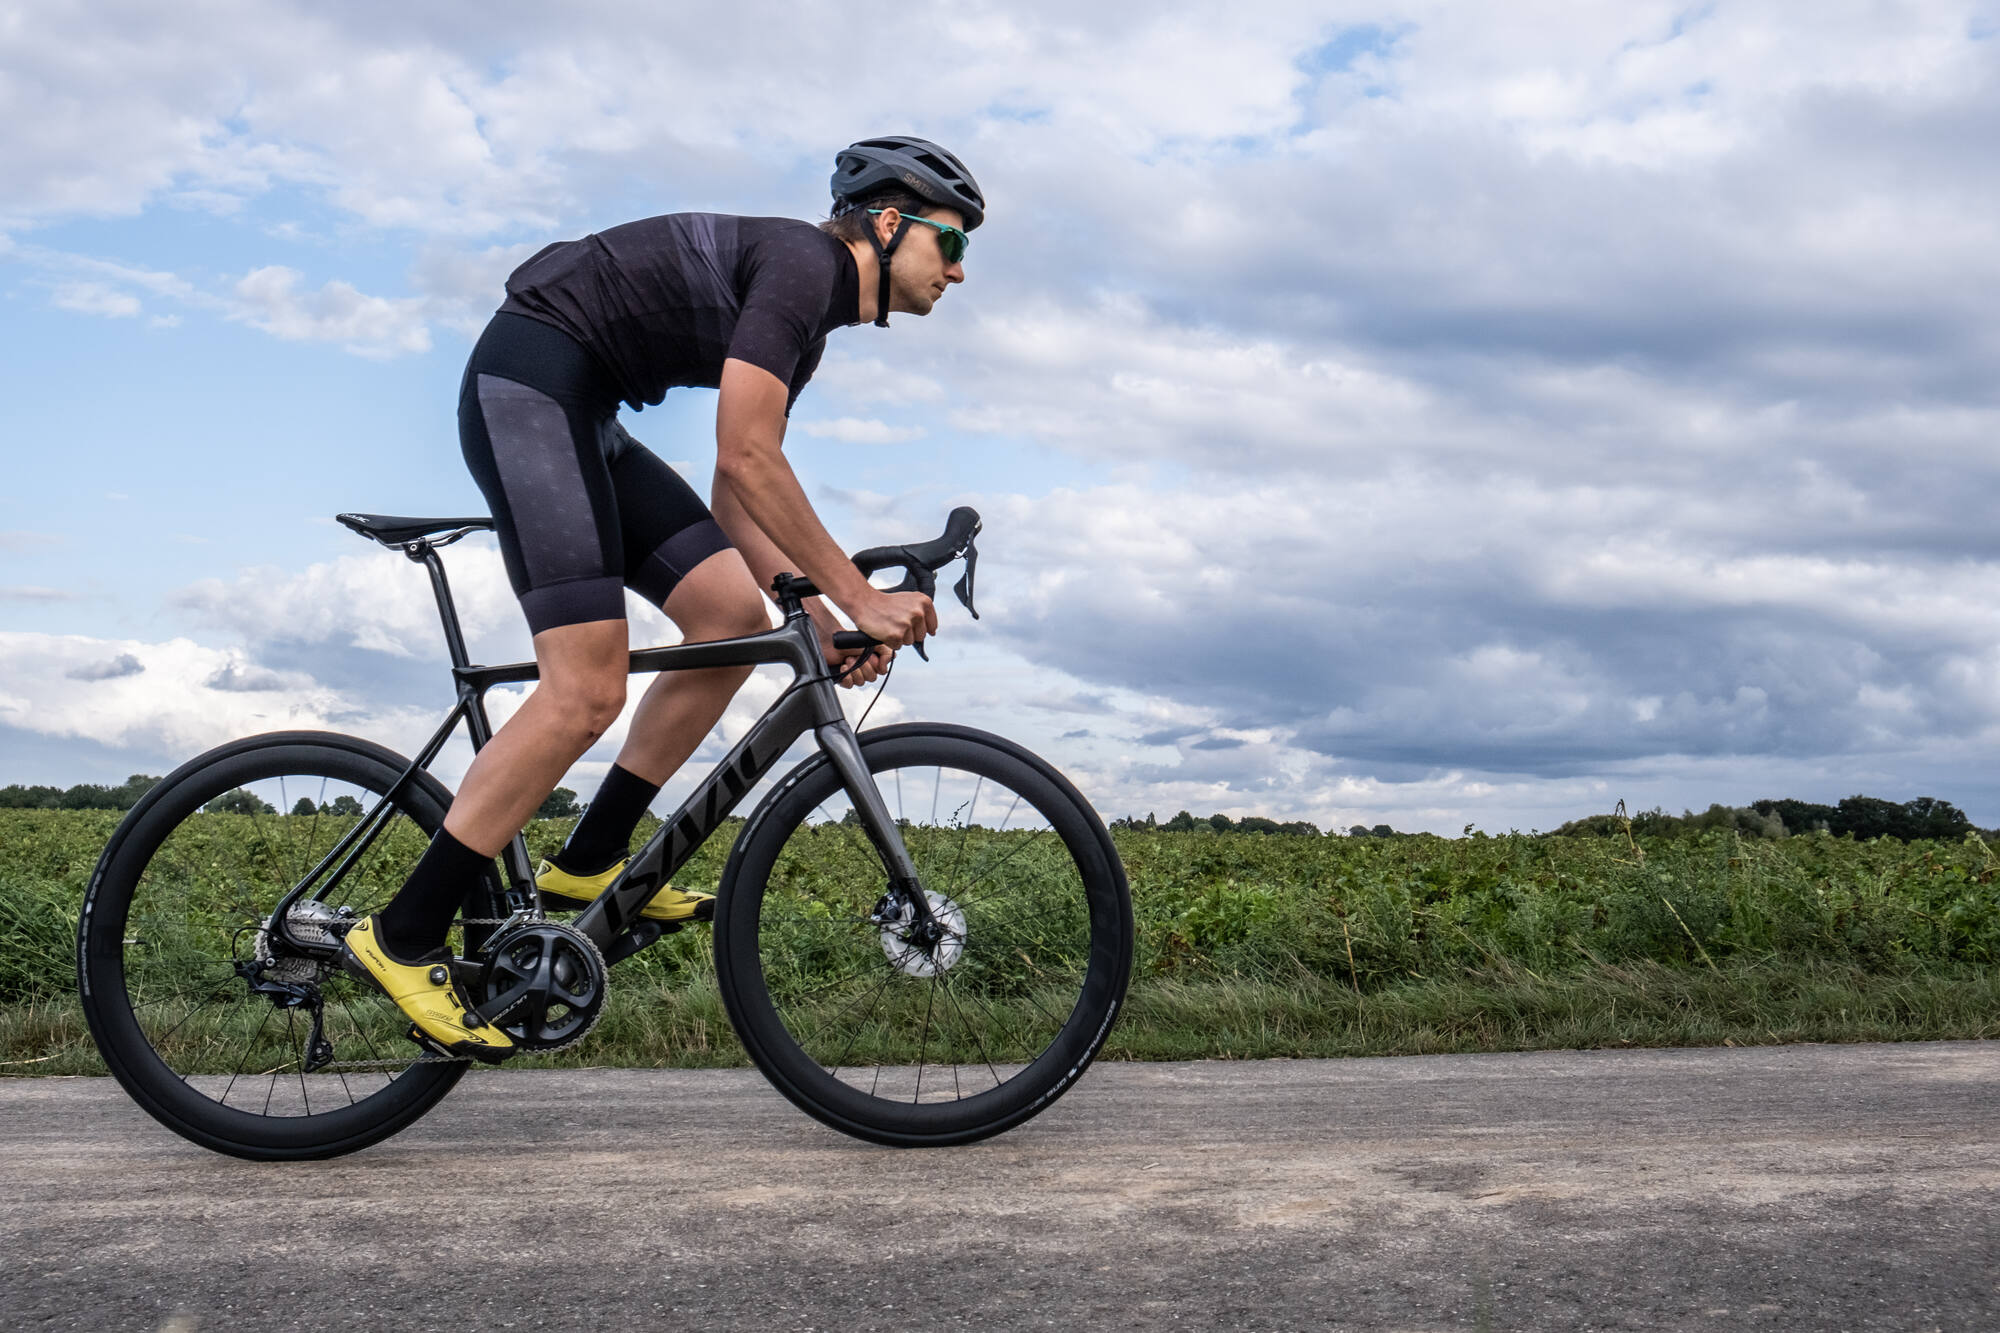 BIKE BOSON DISC LTD | SHIMANO ULTEGRA R8050 Di2